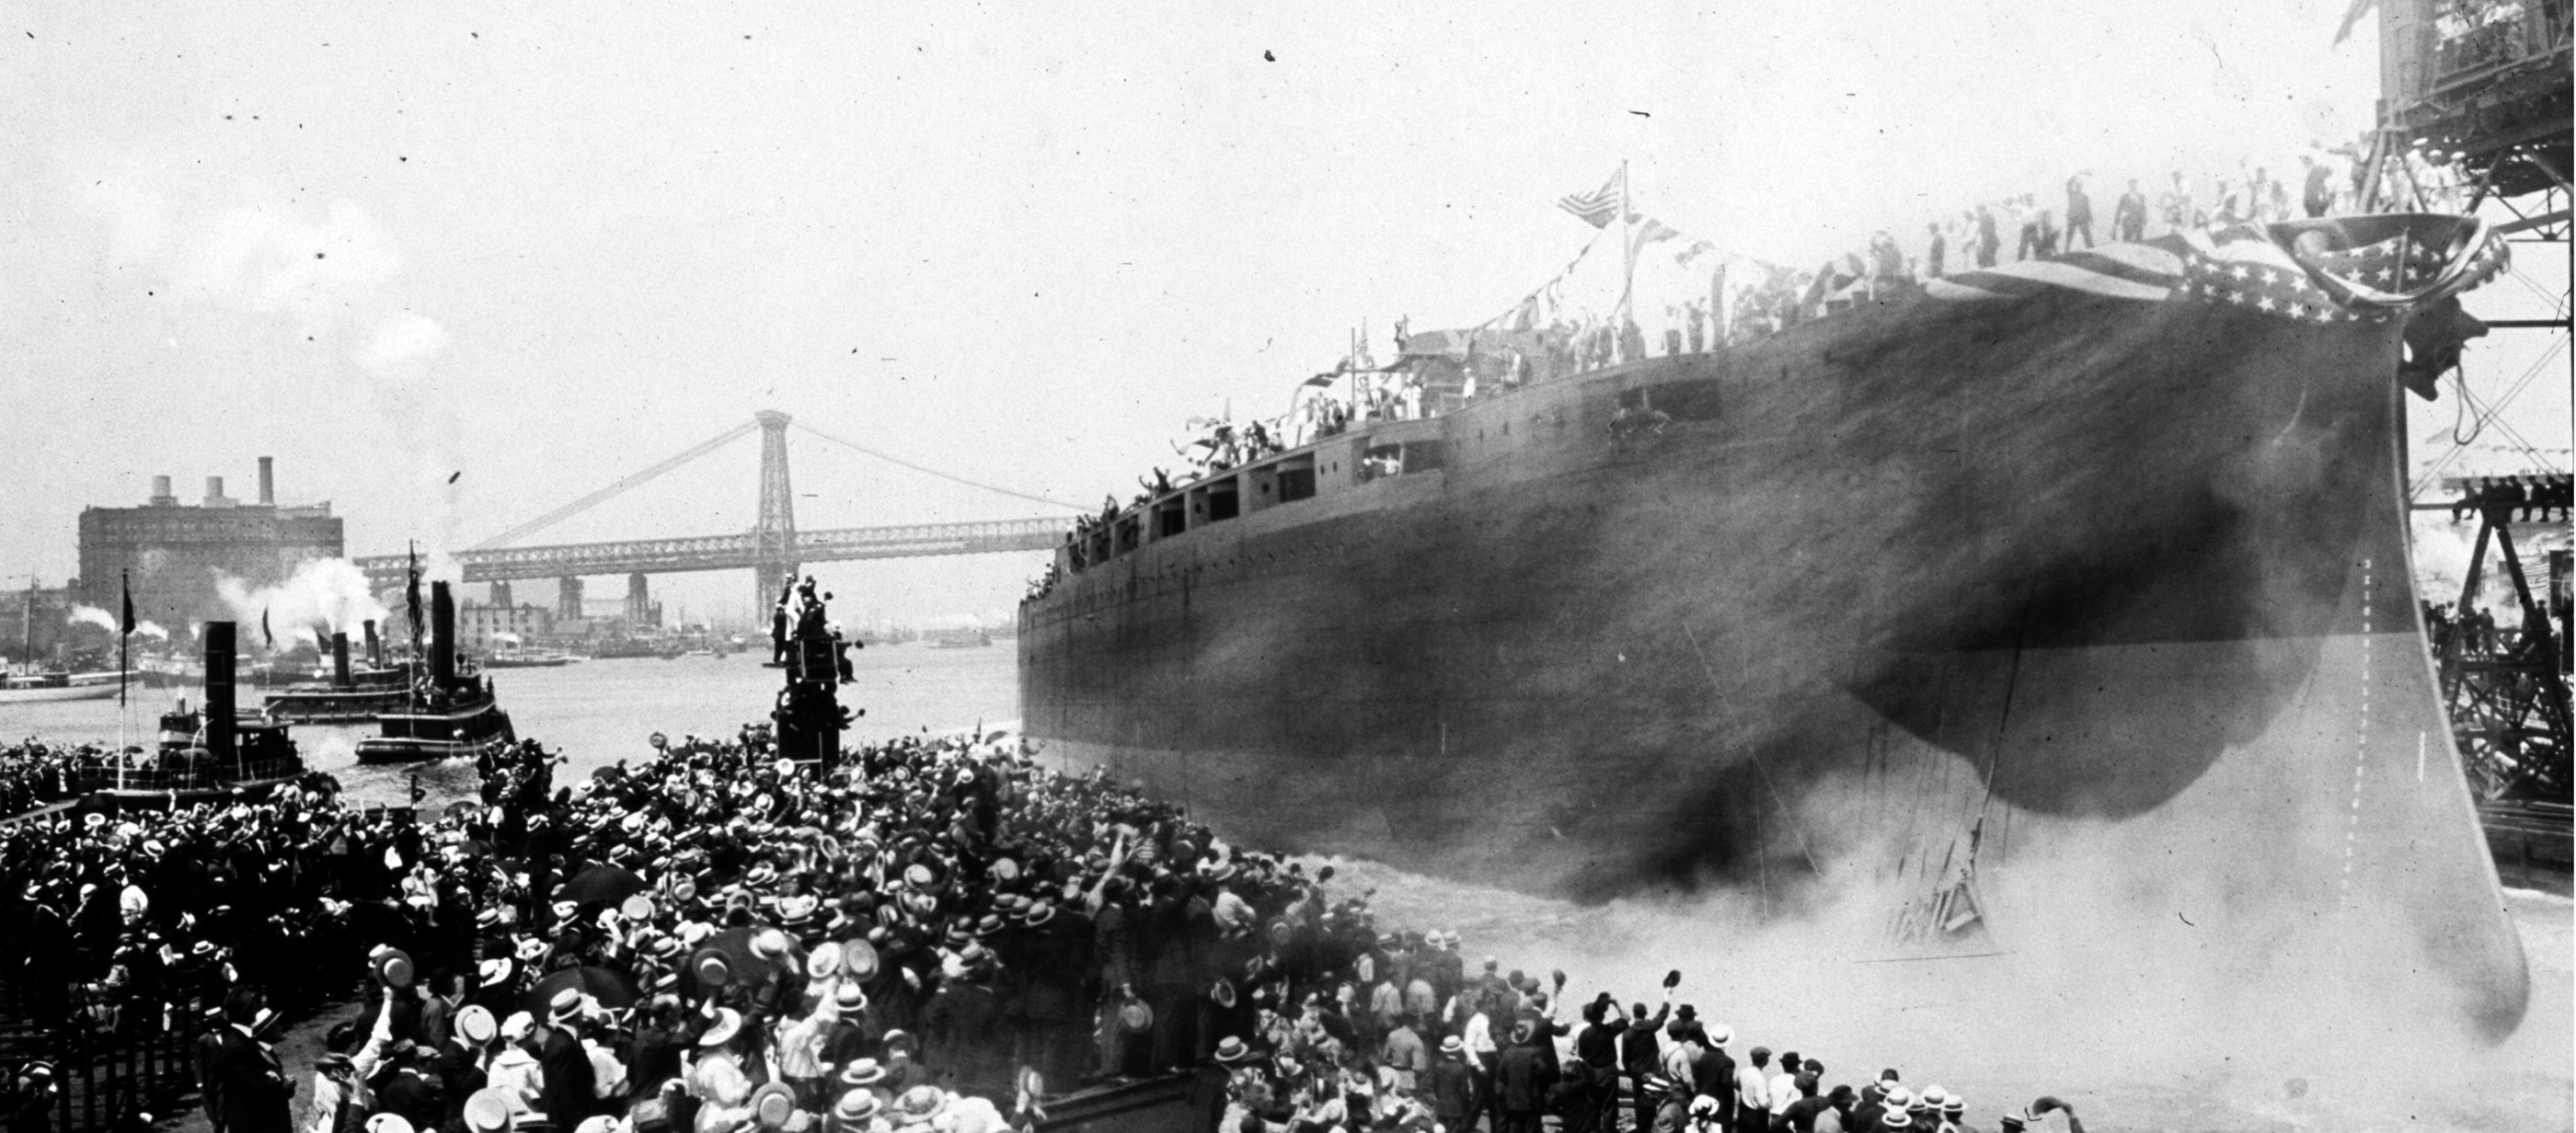 Launching the USS Arizona, Brooklyn Navy Yard, 1915.